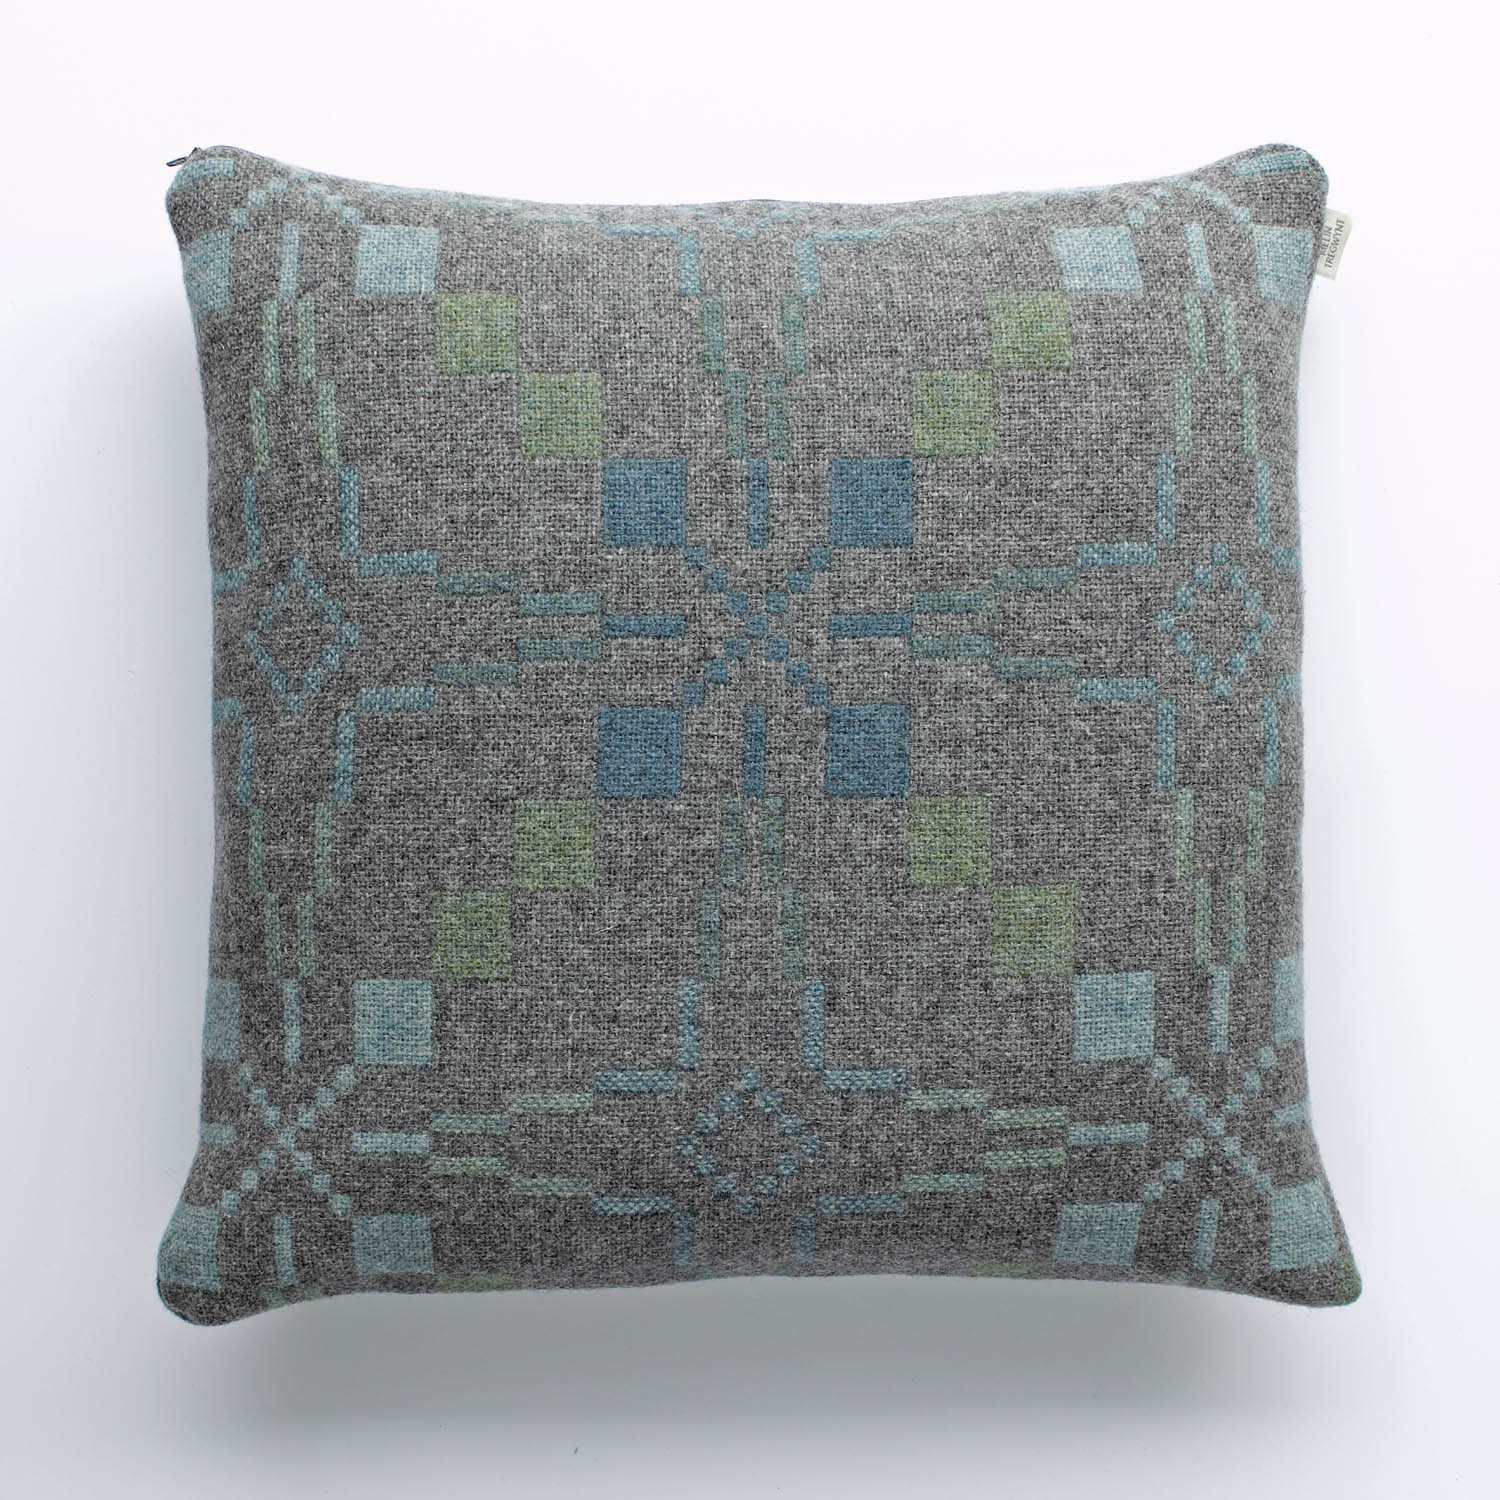 Vintage star Nant Gwrtheyrn cushion